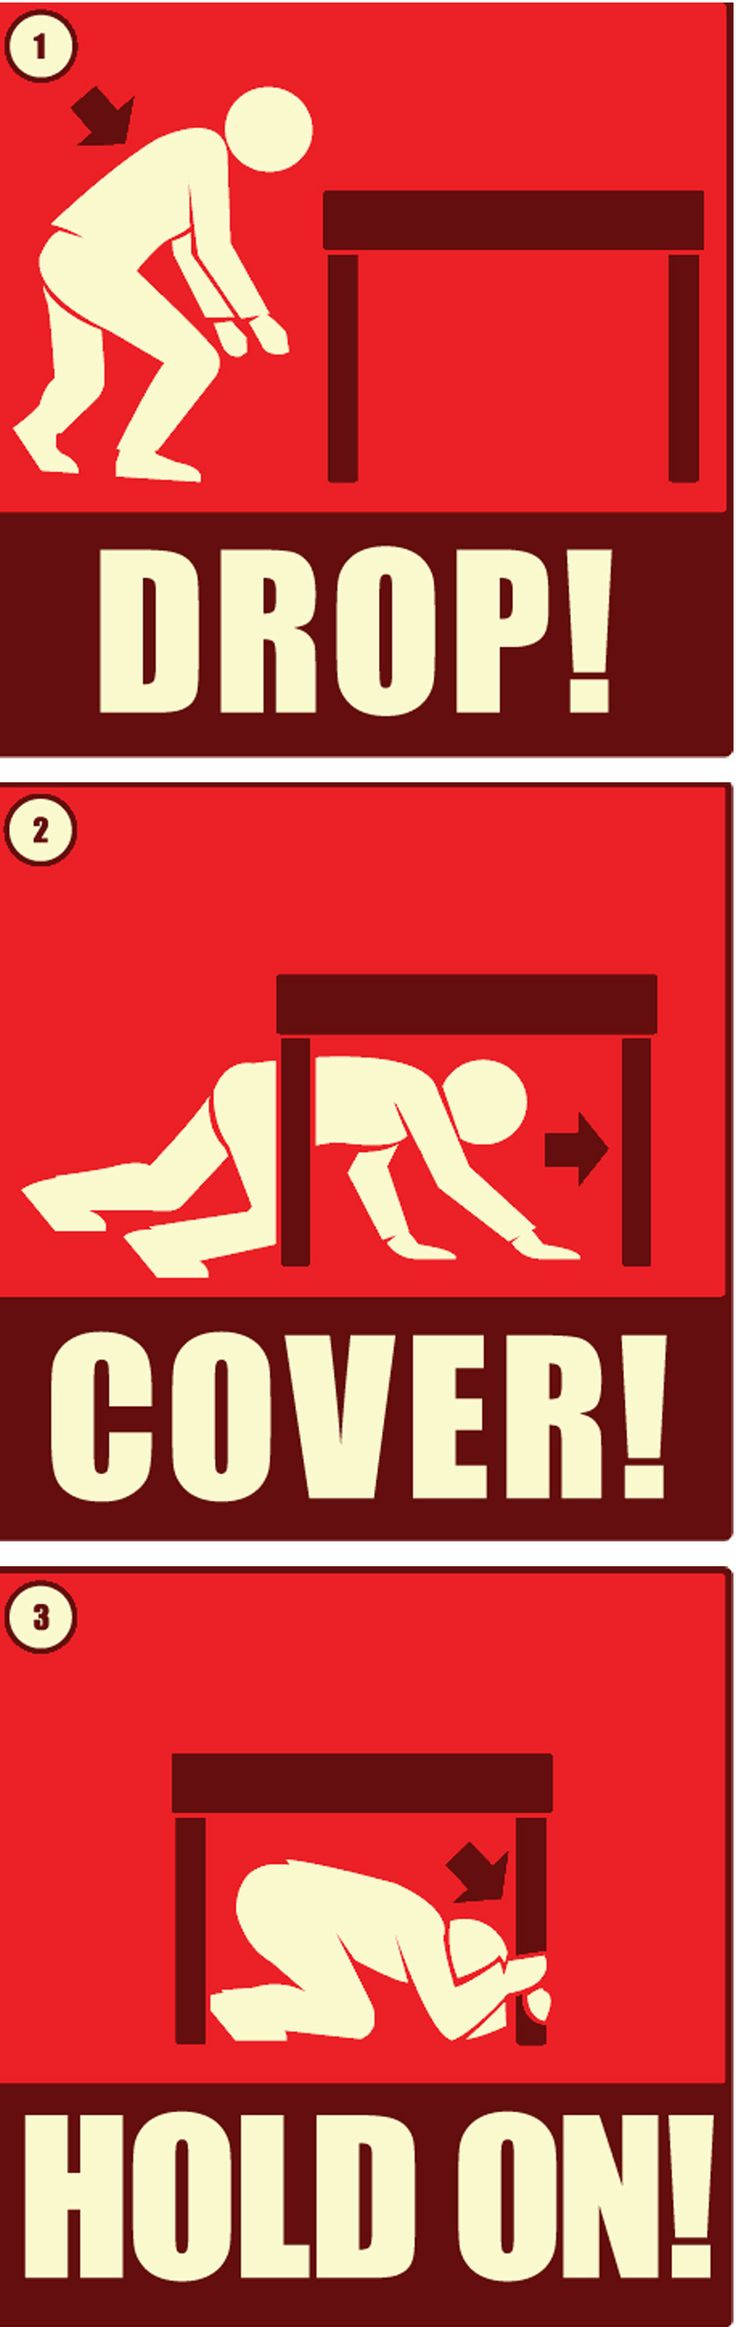 What do you do? Drop, Cover and Hold on! Classroom